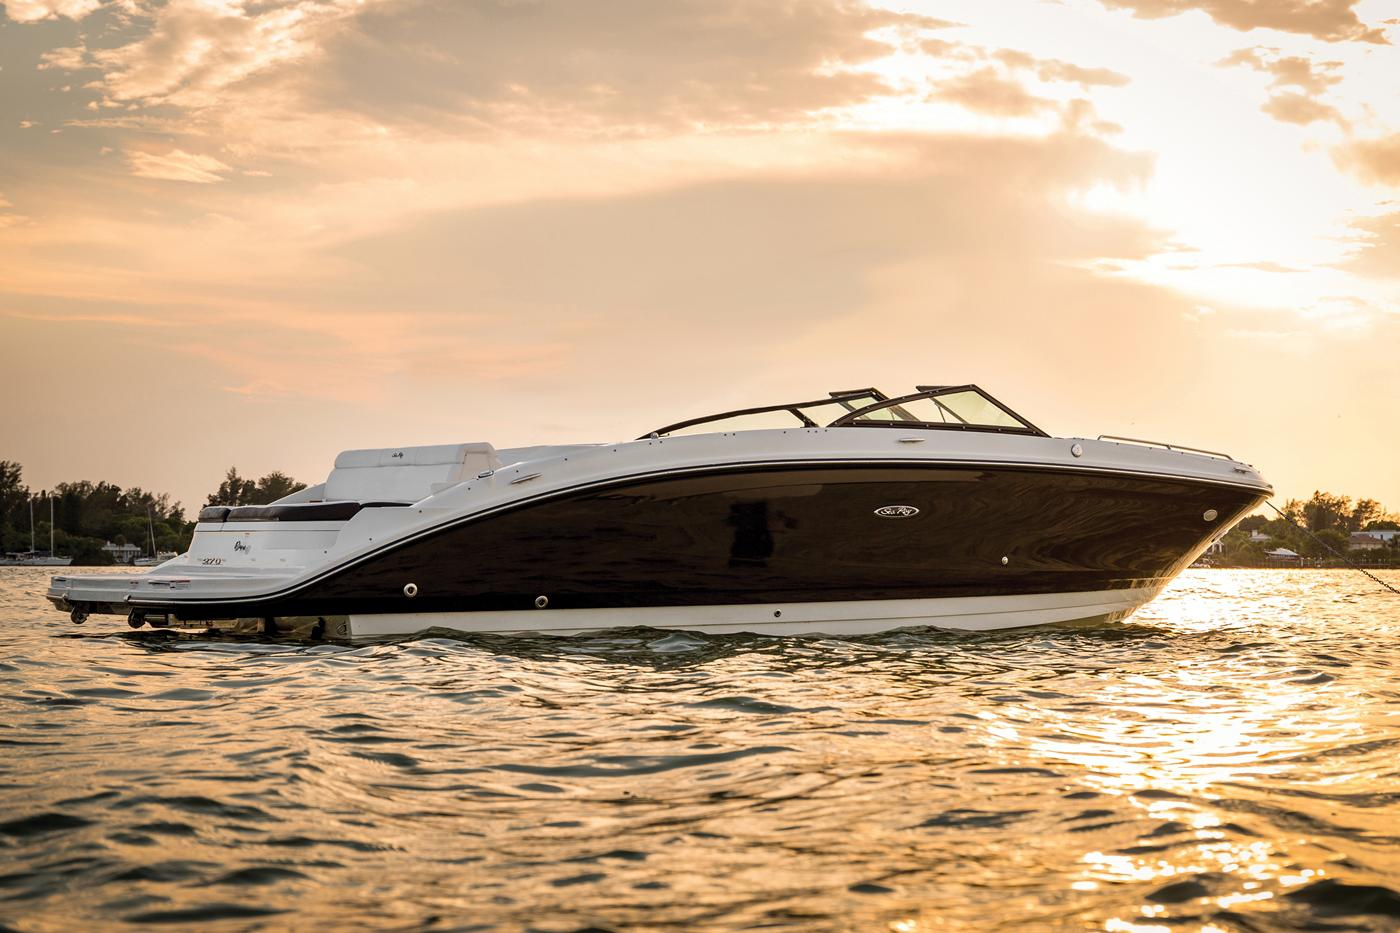 2019 SEA RAY 270 SDX for sale